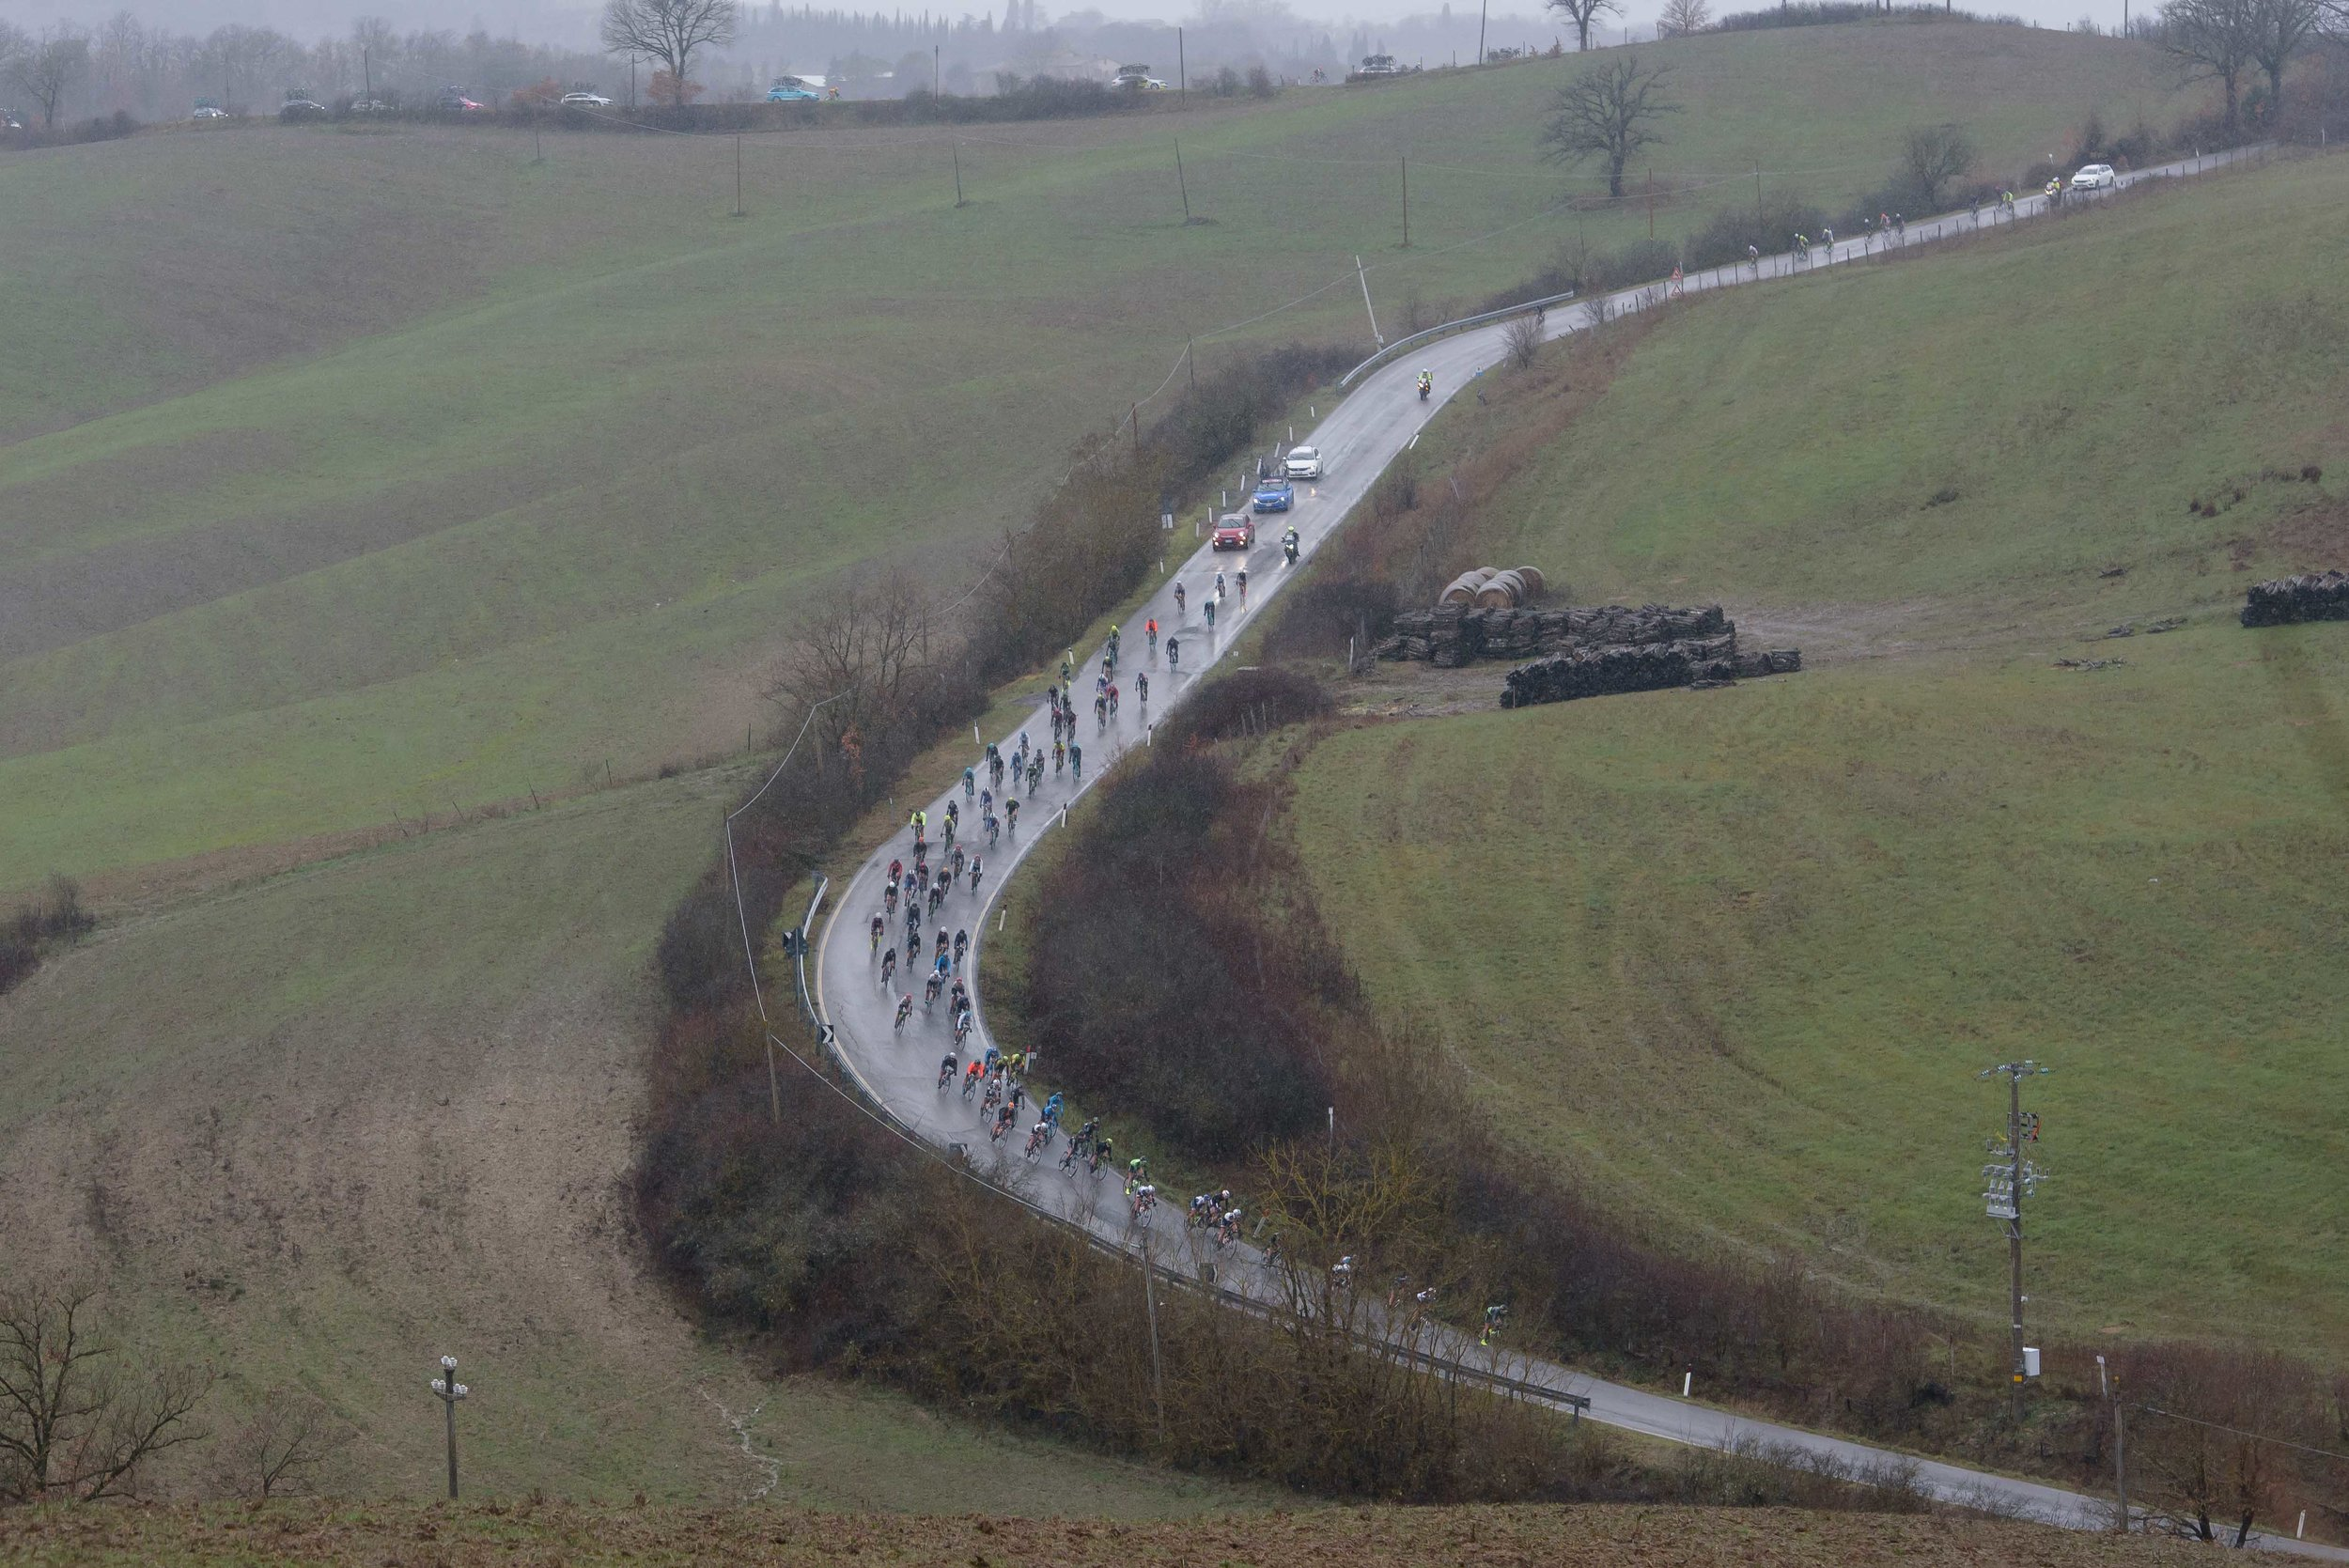 The peloton approach on slick roads at Strade Bianche - Elite Women 2018 - a 136 km road race on March 3, 2018, starting and finishing in Siena, Italy. (Photo by Sean Robinson/Velofocus.com)